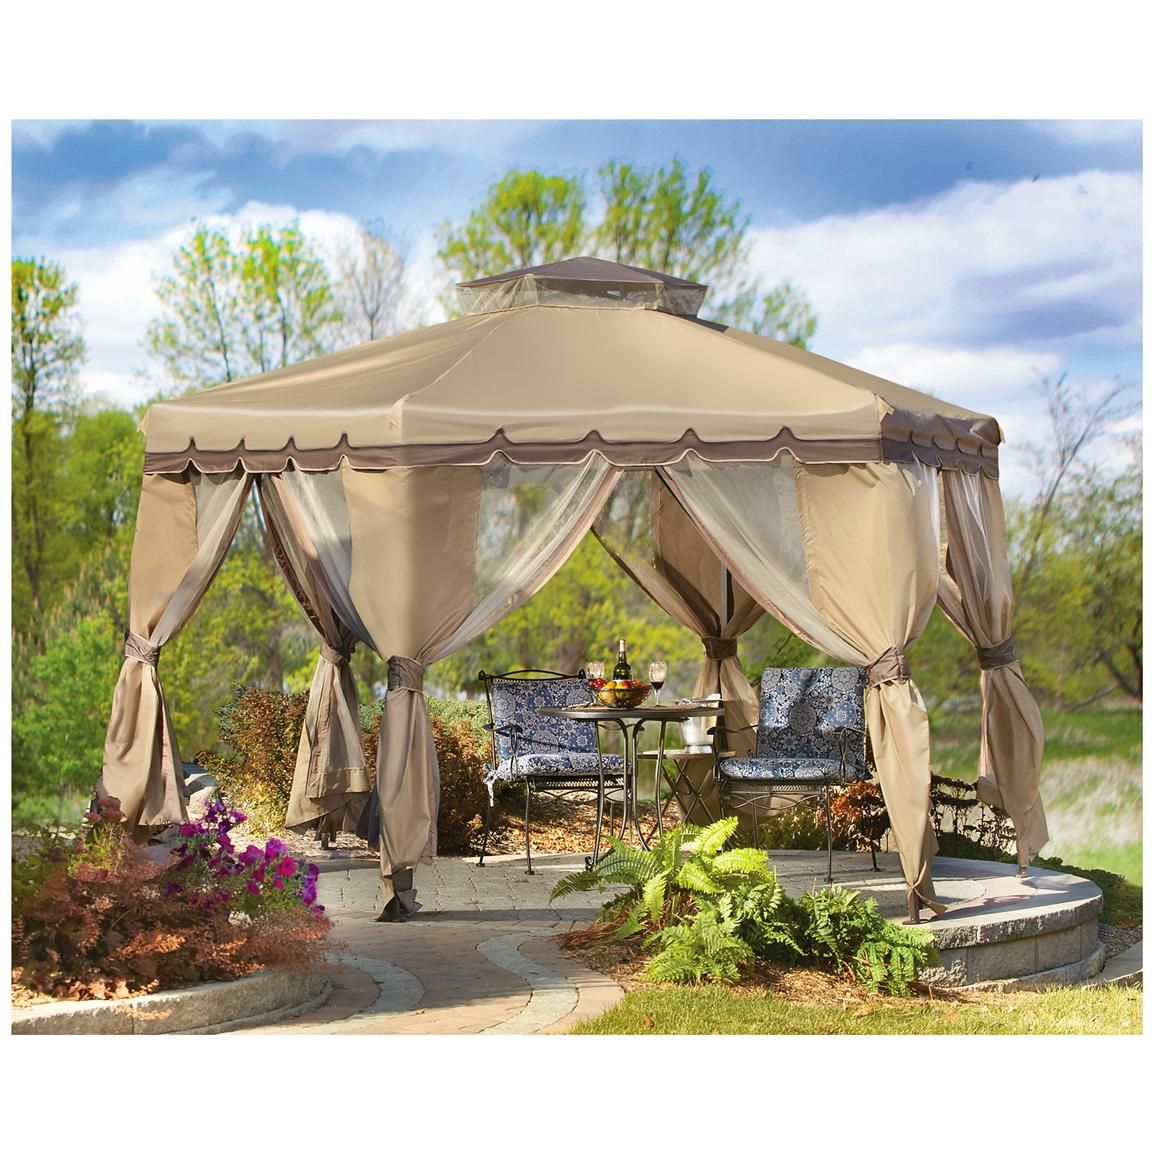 Elegant If You Are Looking For A Place To Relax Out In Your Yard, You Need To Check  Out The Castlecreek 12 Foot Paradise Gazebo. This Is Going To Become Your  New ...